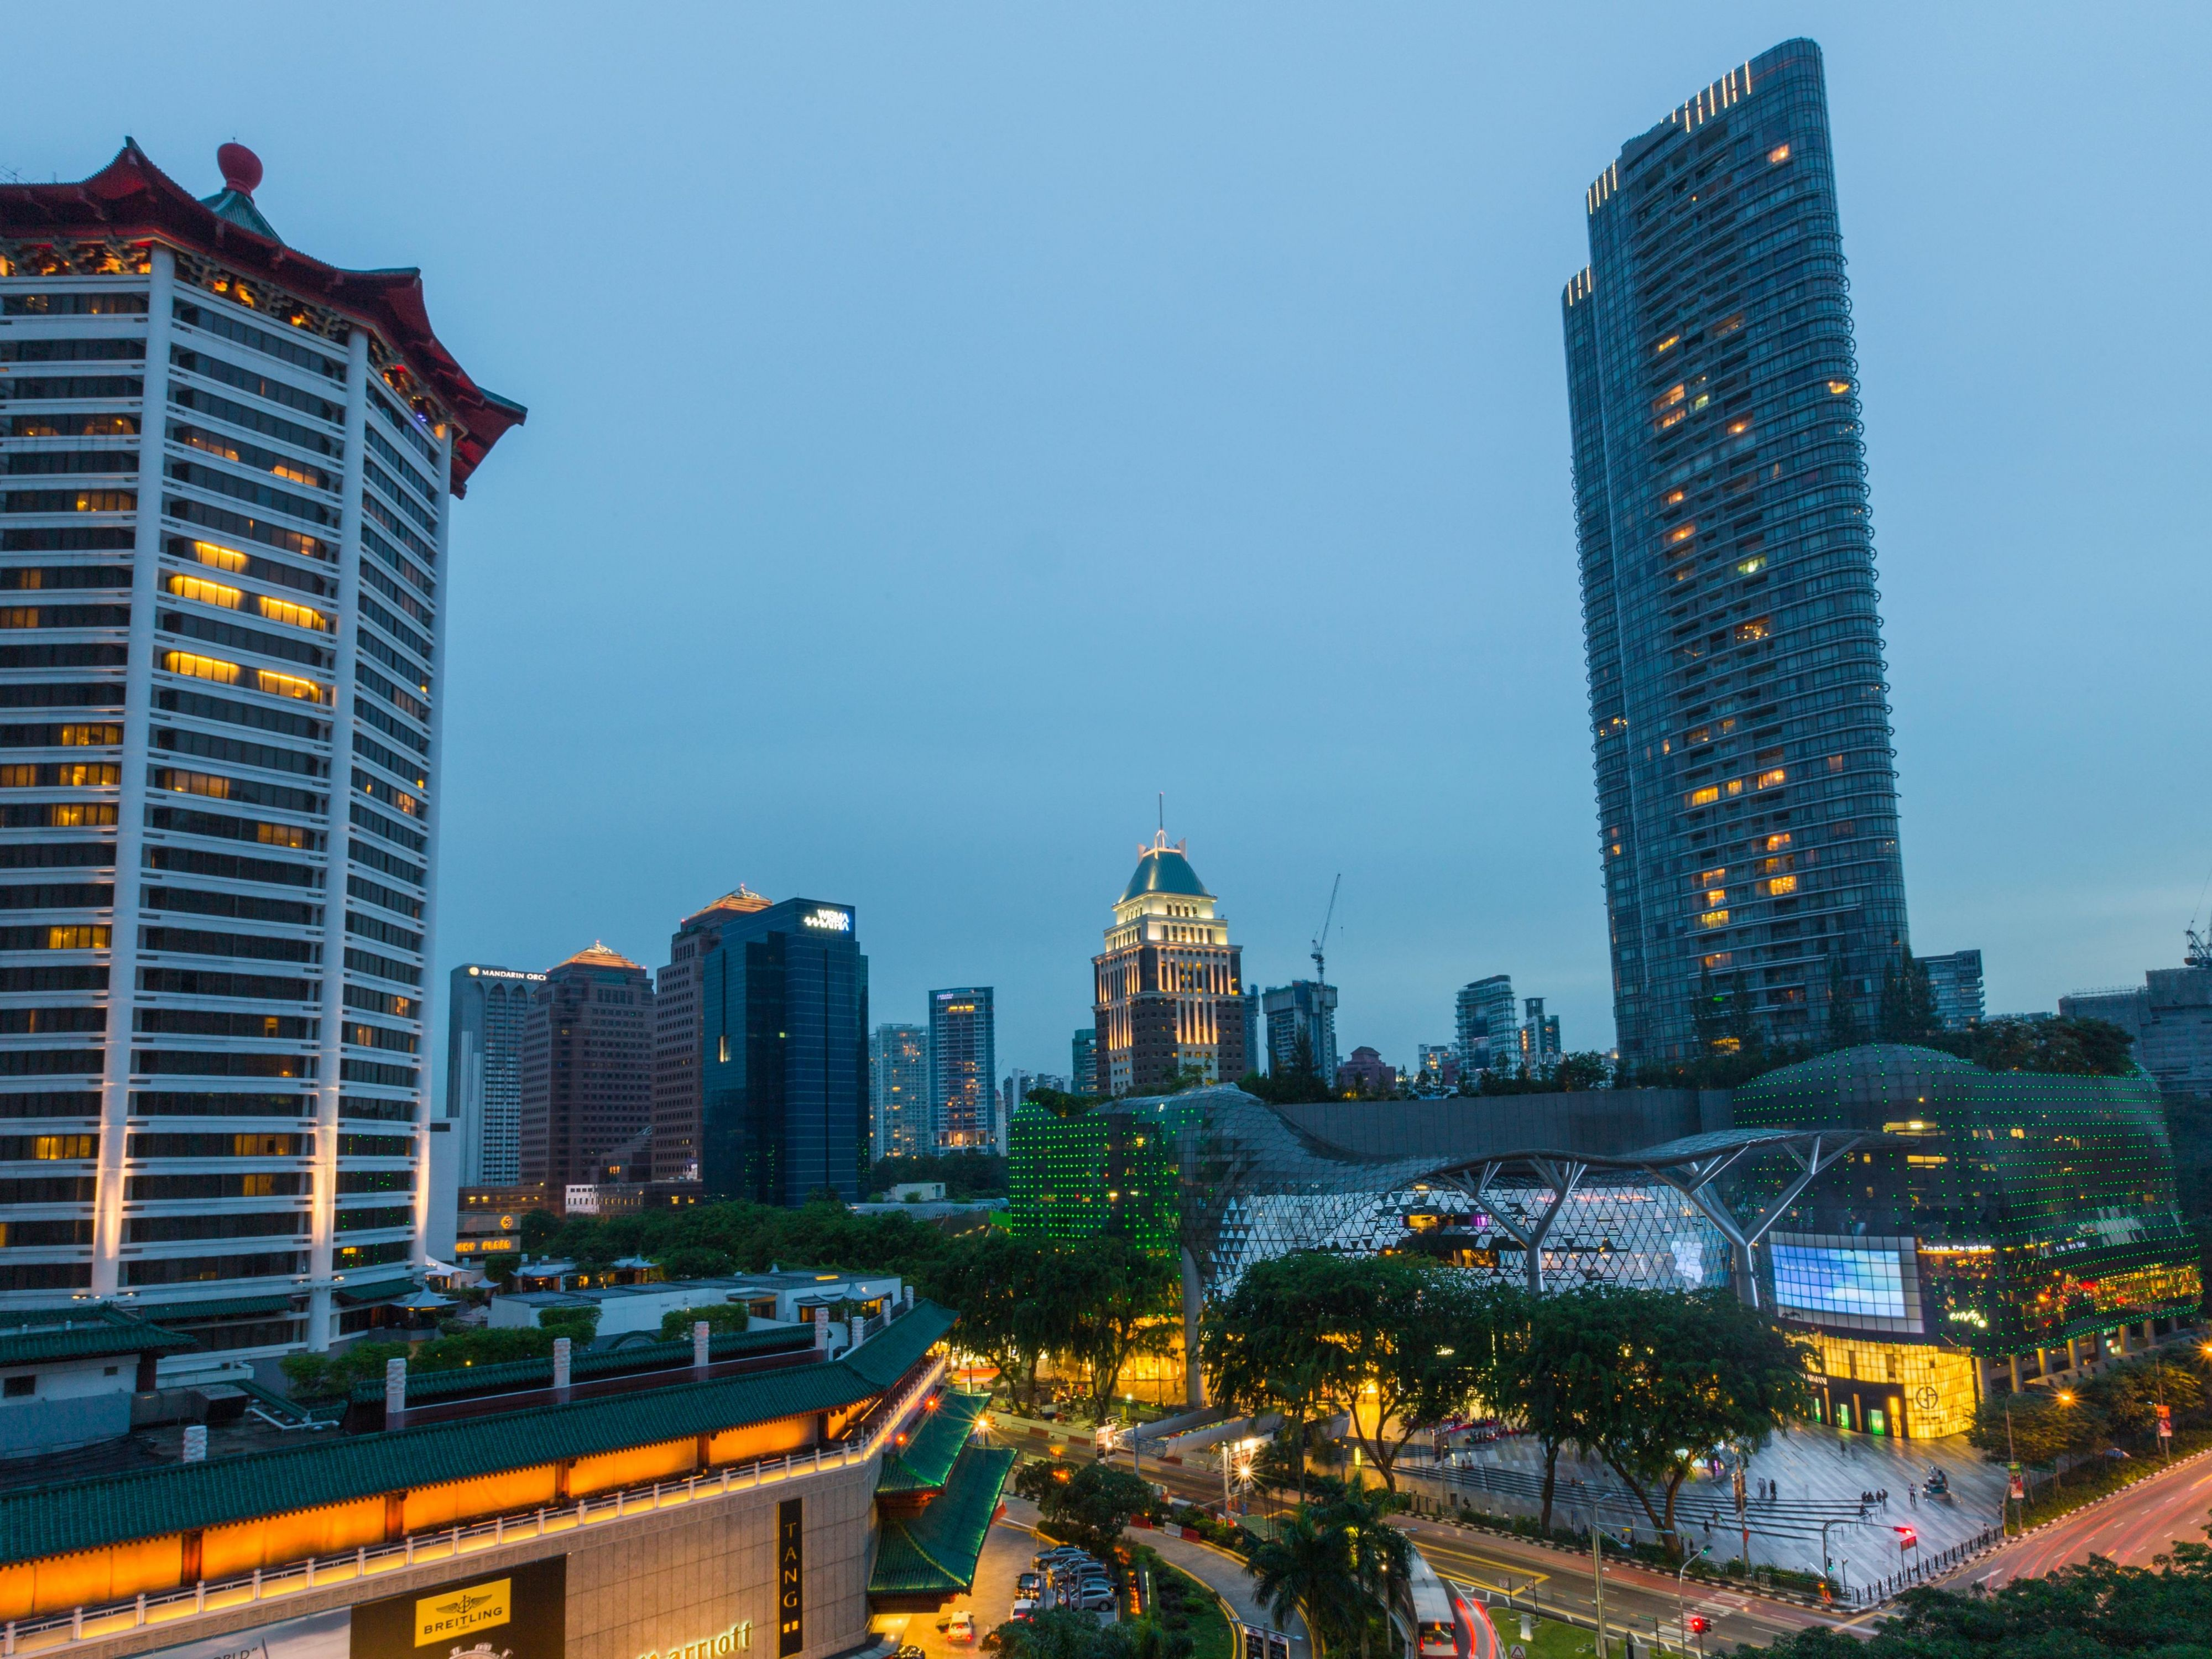 The hotel is in walking distance to shopping malls on Orchard Road